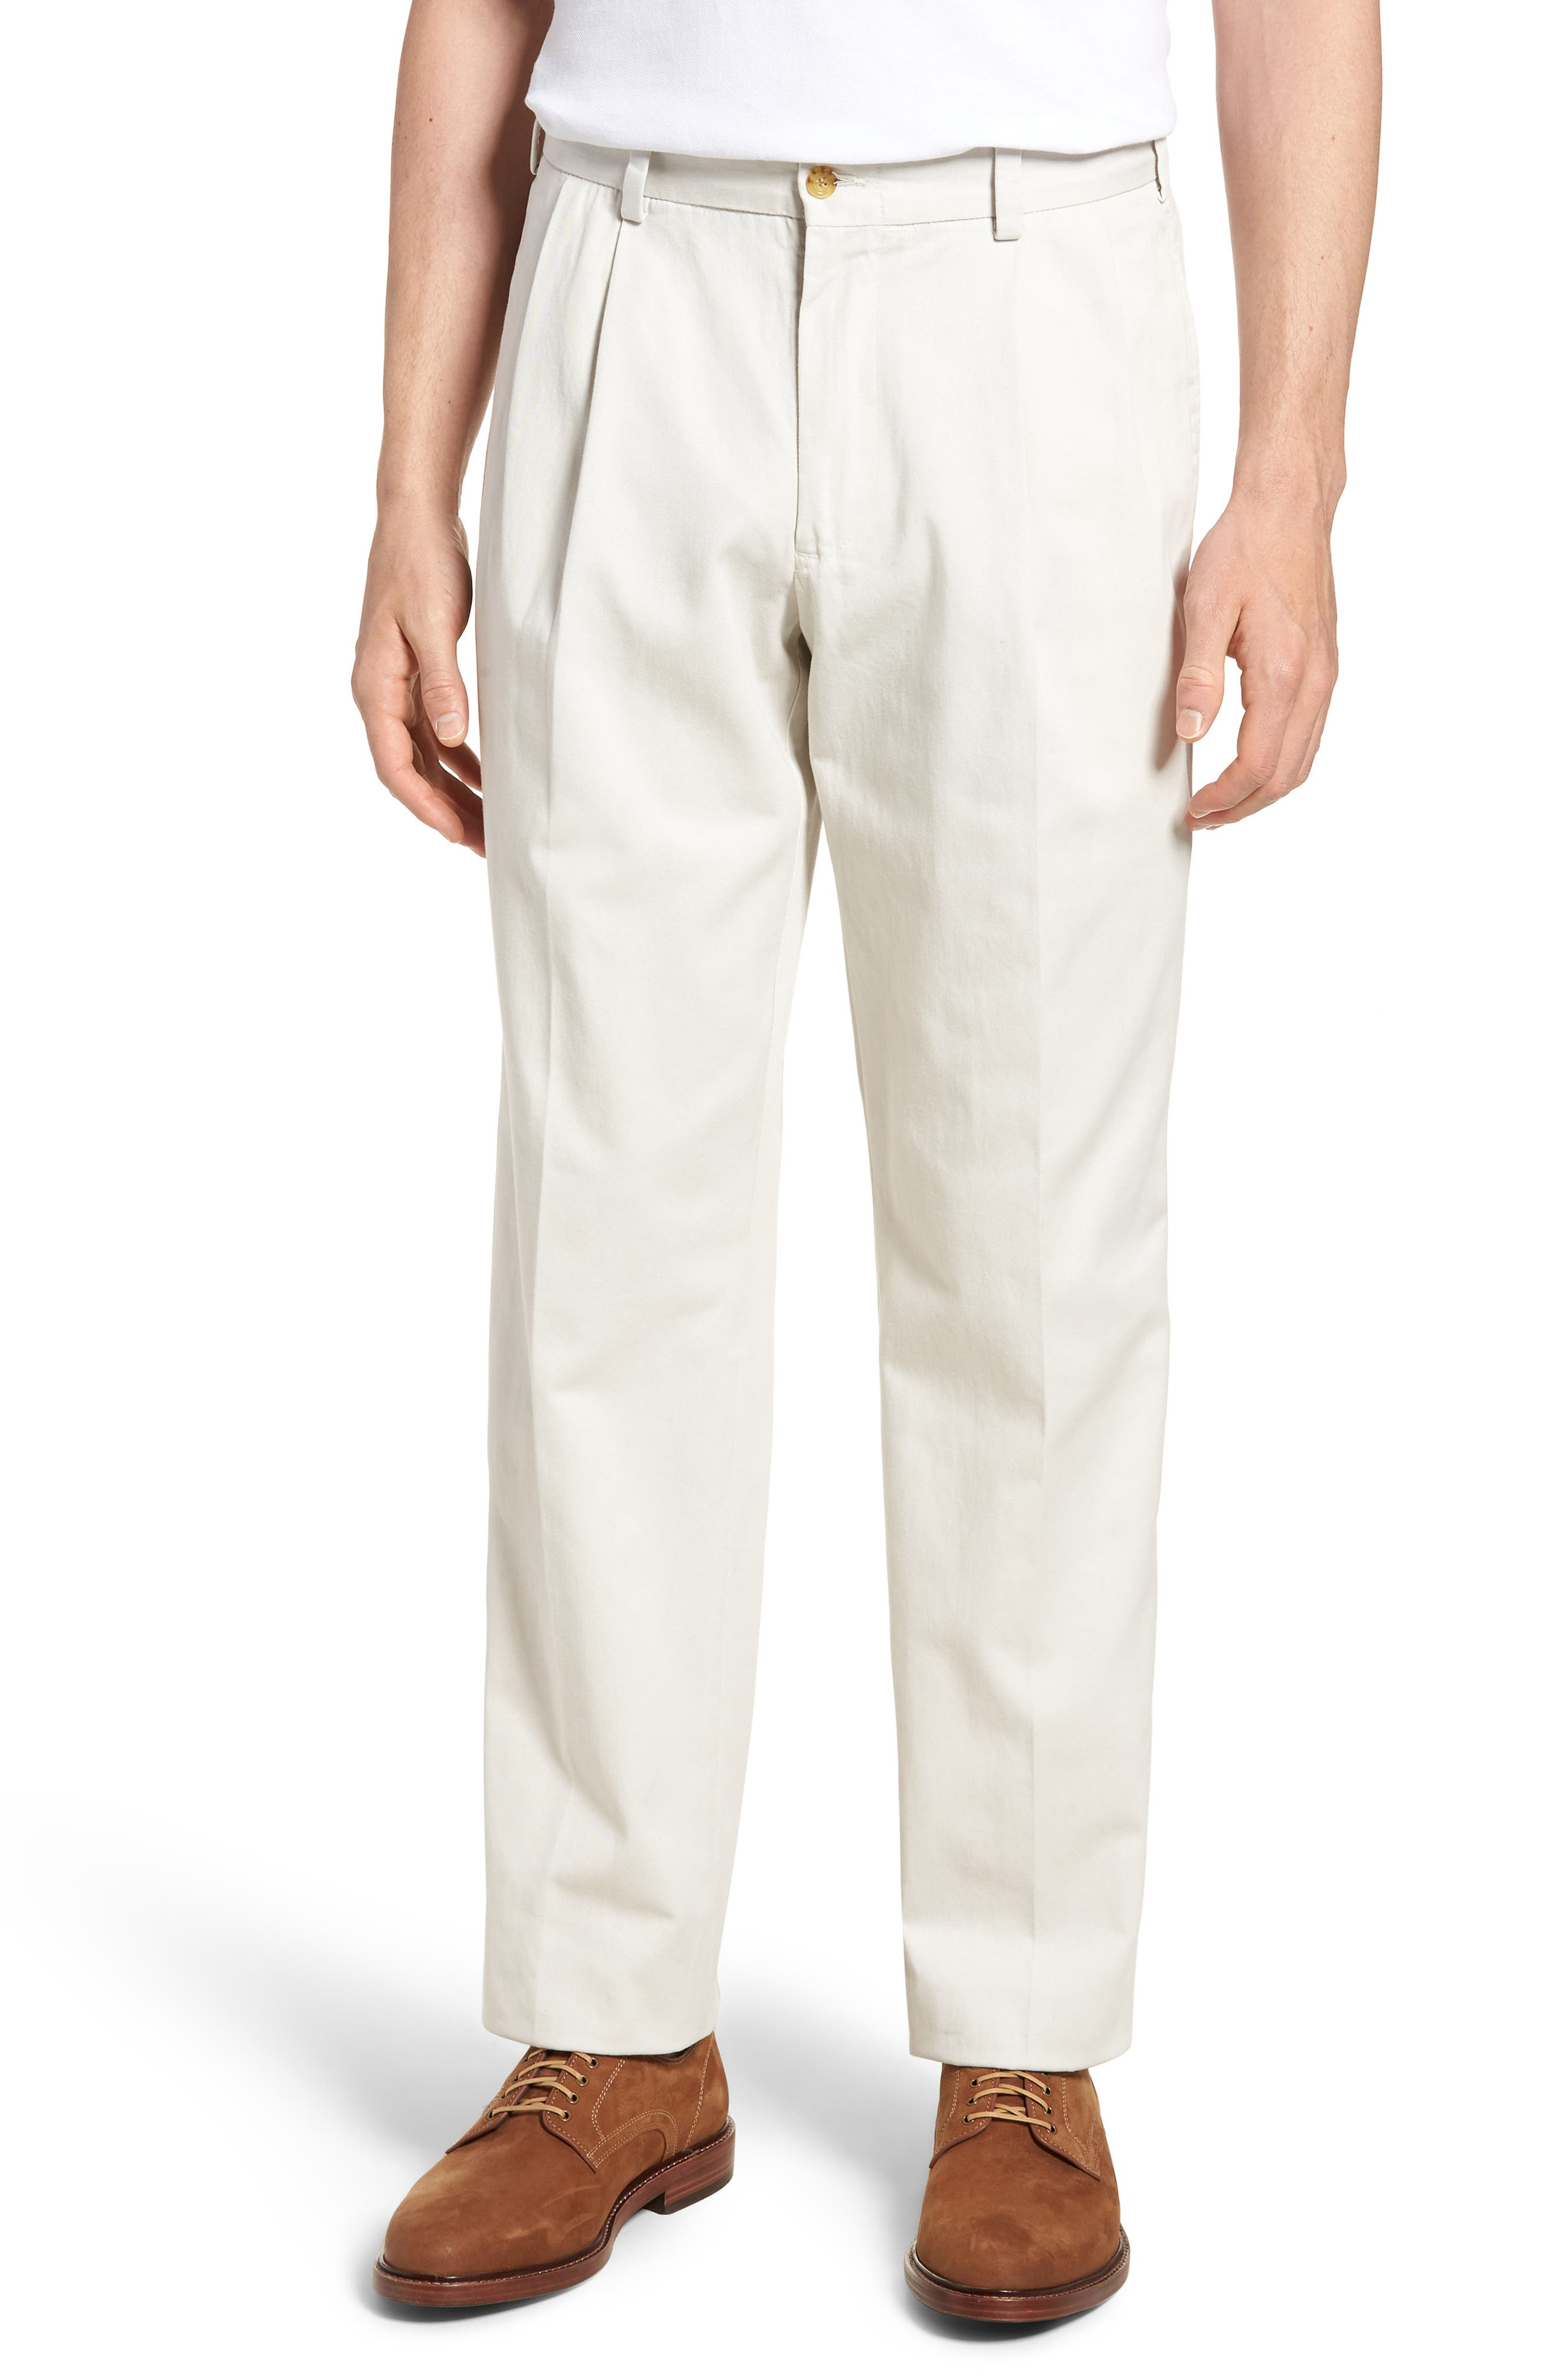 M2 Classic Fit Vintage Twill Pleated Pants,                         Main,                         color, 270